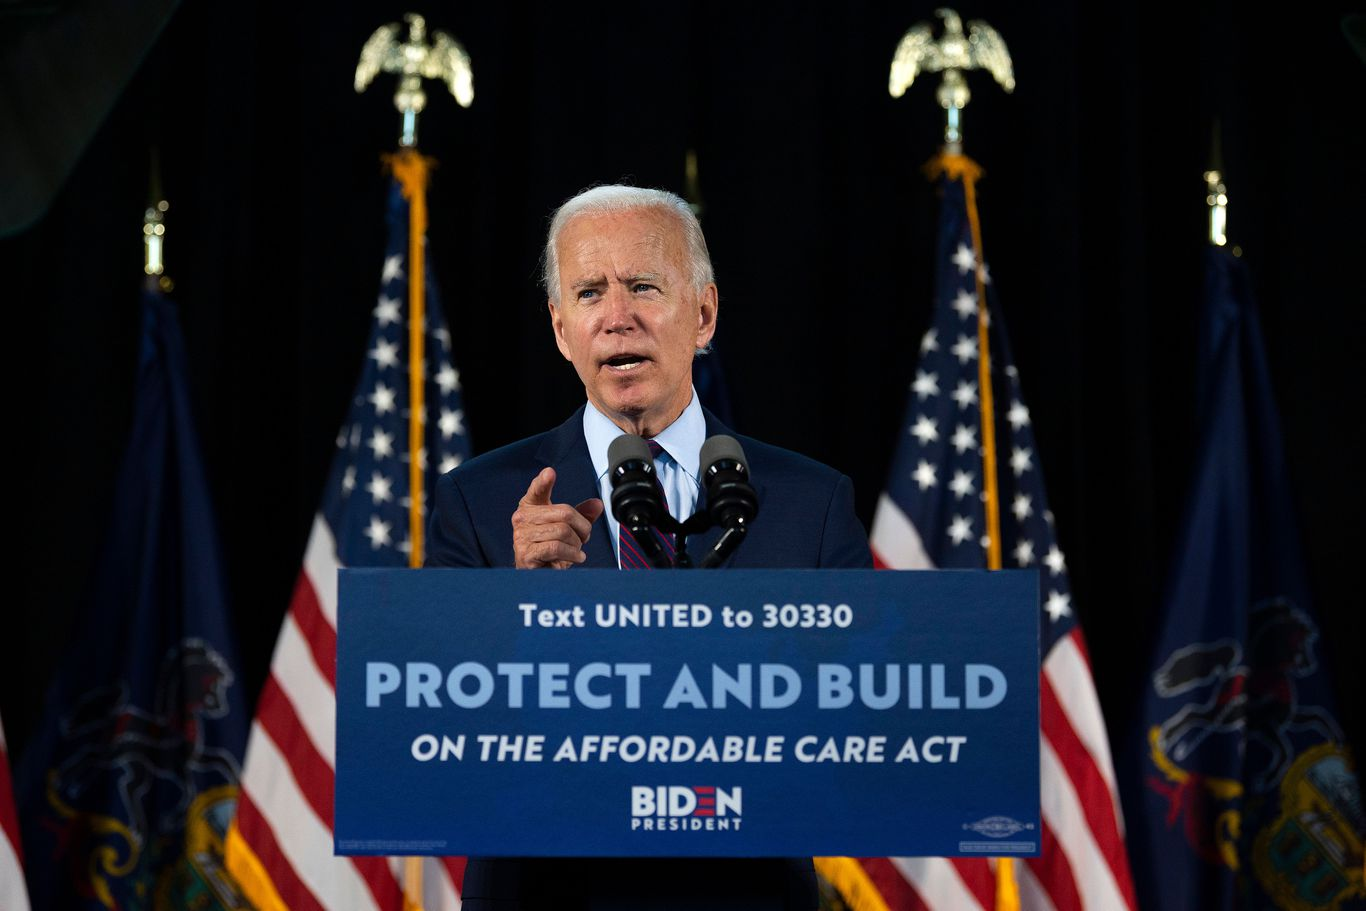 Joe Biden's plan to make the Affordable Care Act more affordable